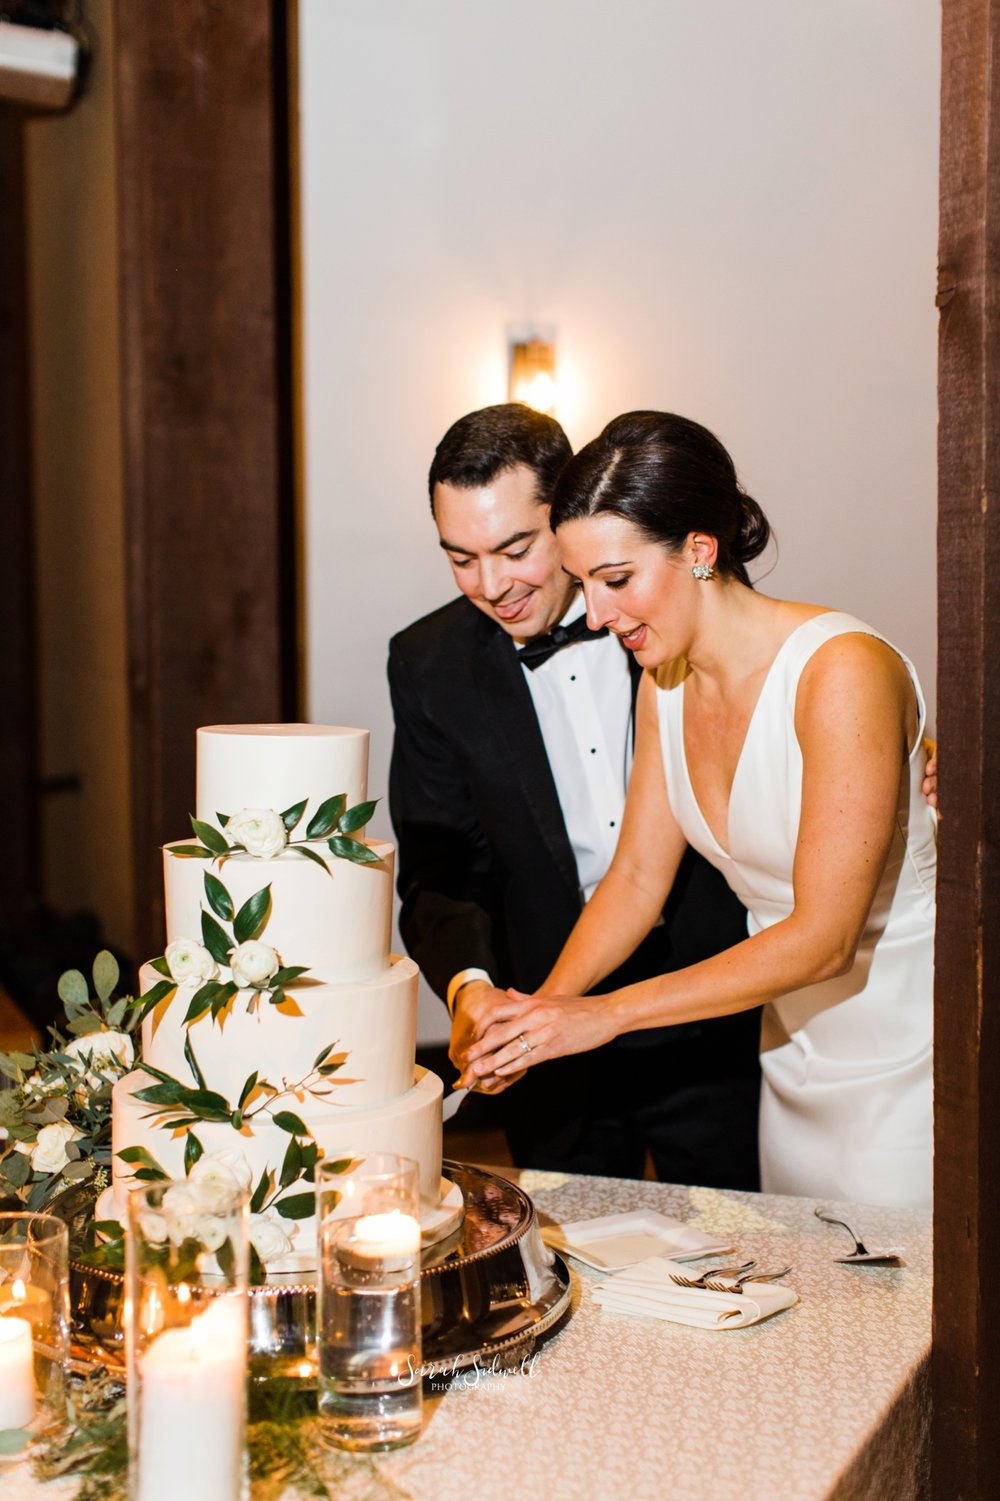 A bride and groom cut their wedding cake | Sarah Sidwell Photography | The Bell Tower